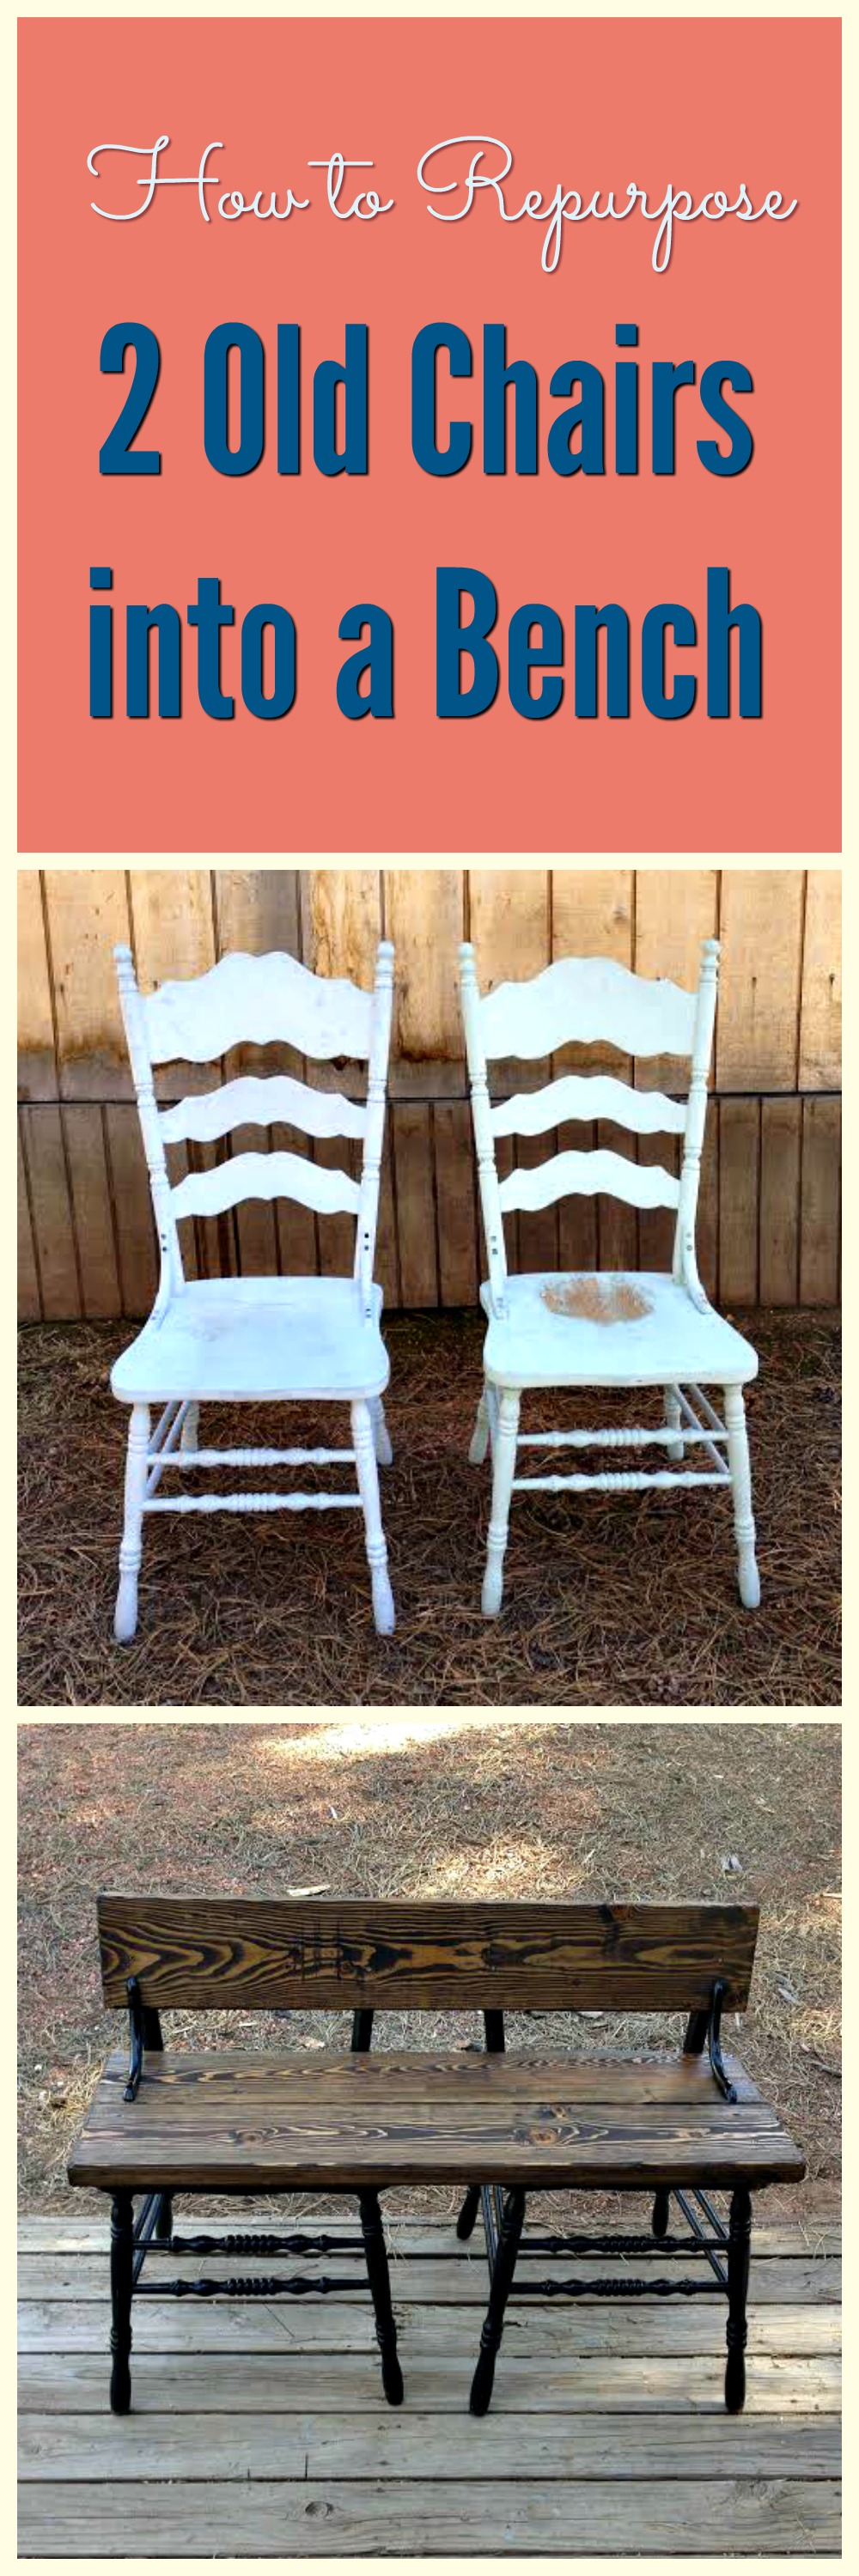 Marvelous How To Repurpose 2 Old Chairs Into A Bench Andrewgaddart Wooden Chair Designs For Living Room Andrewgaddartcom